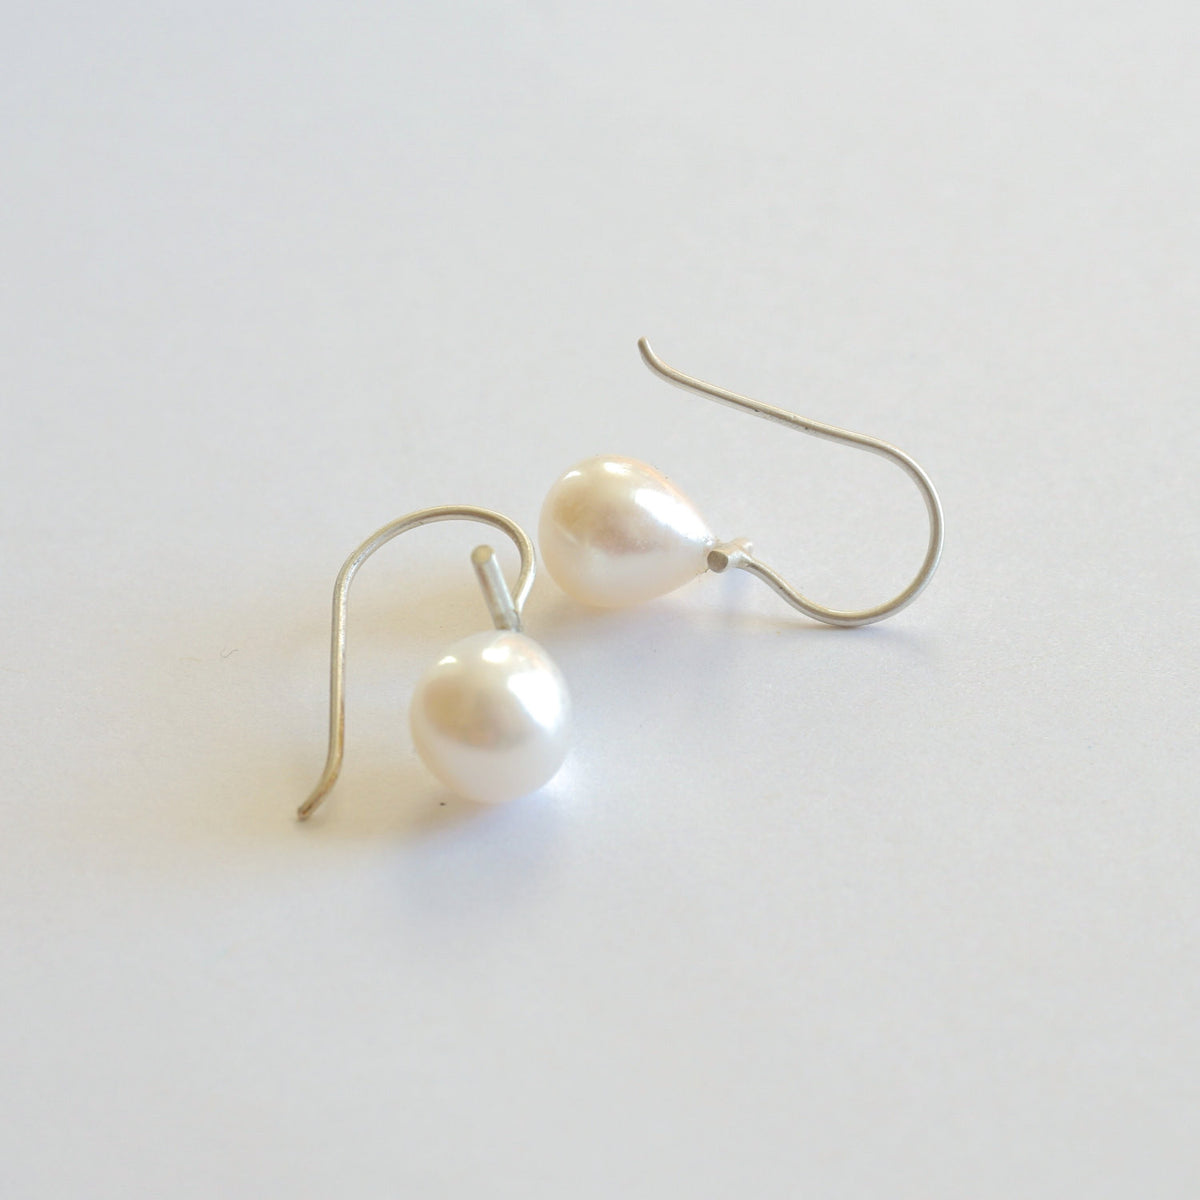 Classic White Teardrop Freshwater Pearl Dangle Drop Earrings with 11mm Bar - 0241 - Virginia Wynne Designs